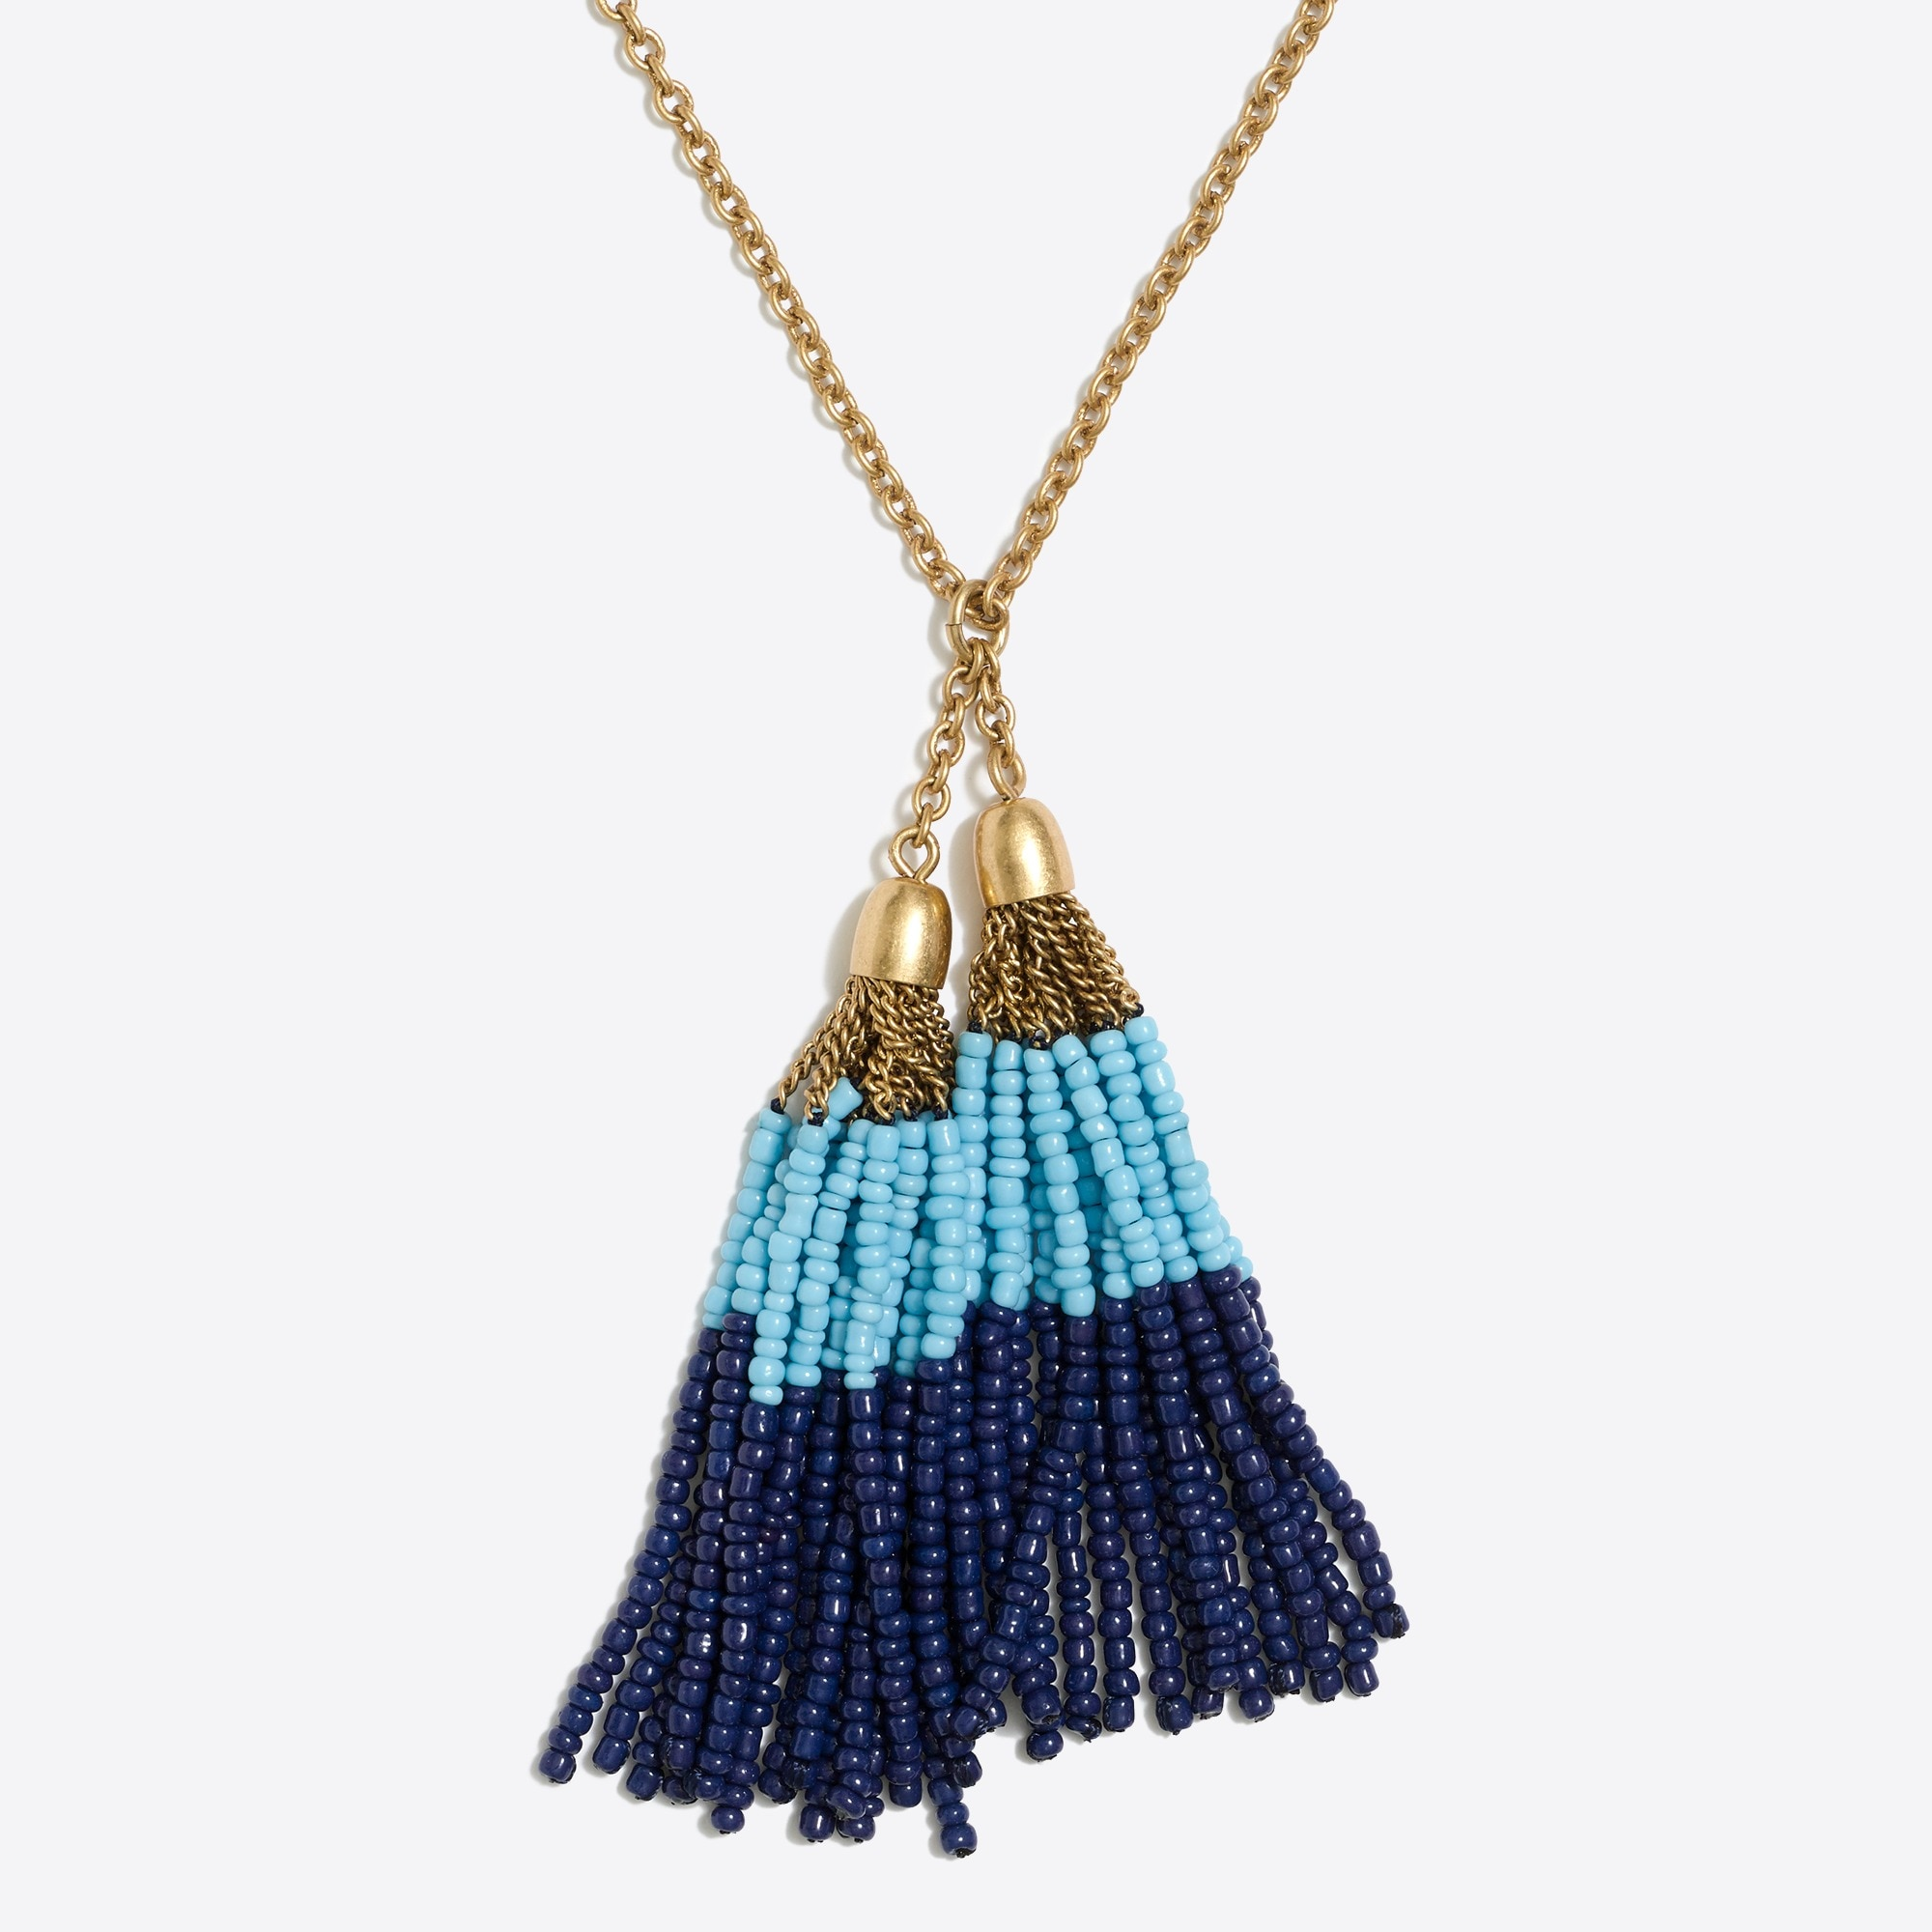 Double tassel pendant necklace